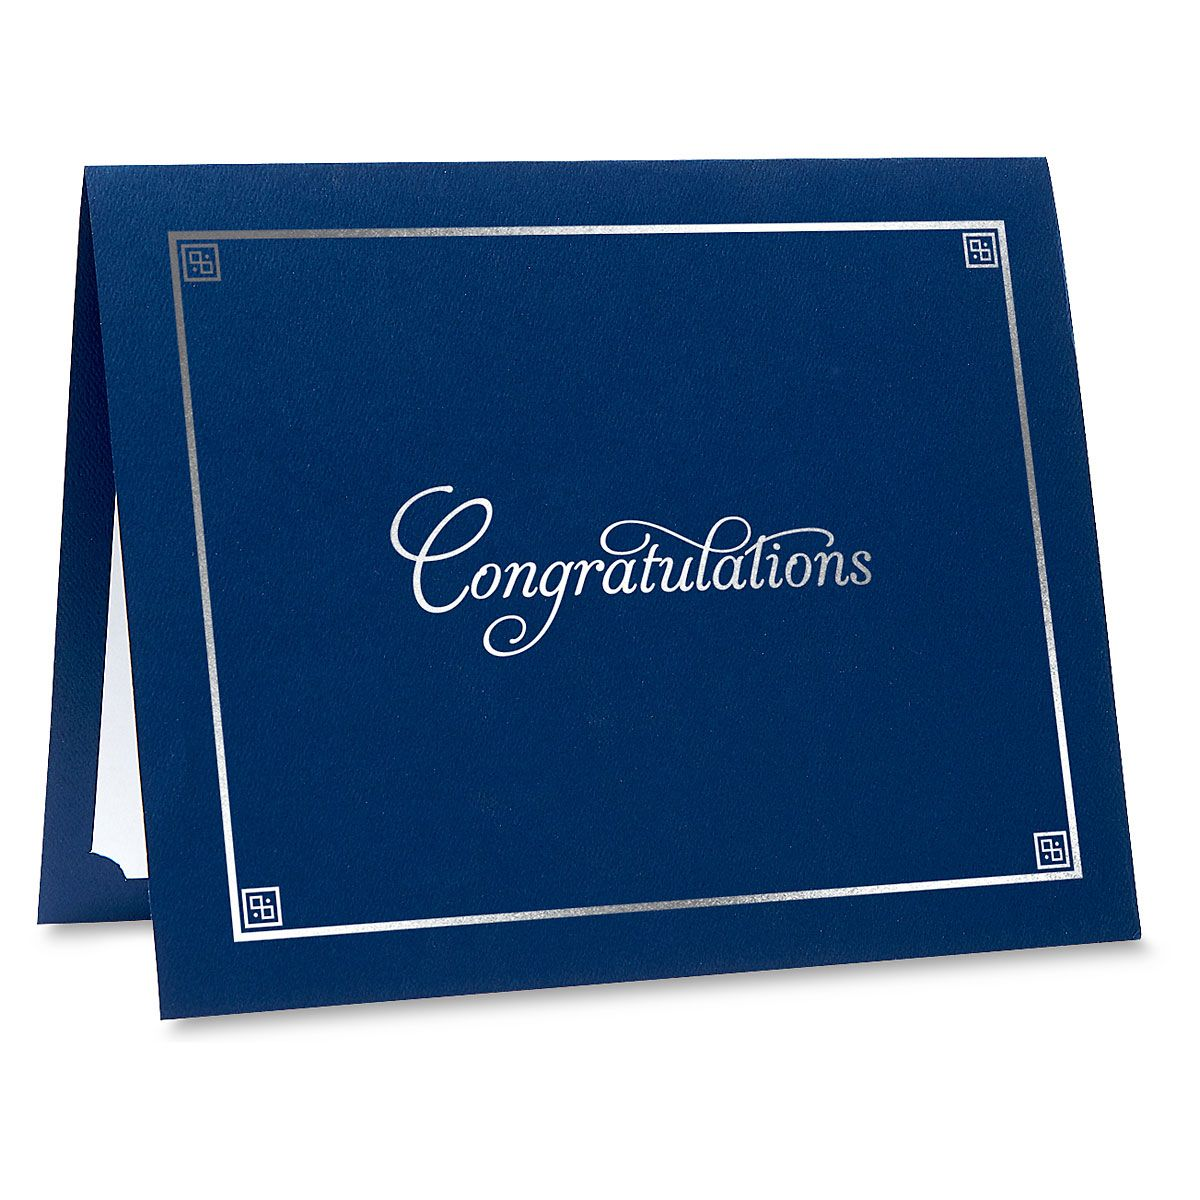 Congratulations Blue Certificate Folder with Silver Border - Set of 25